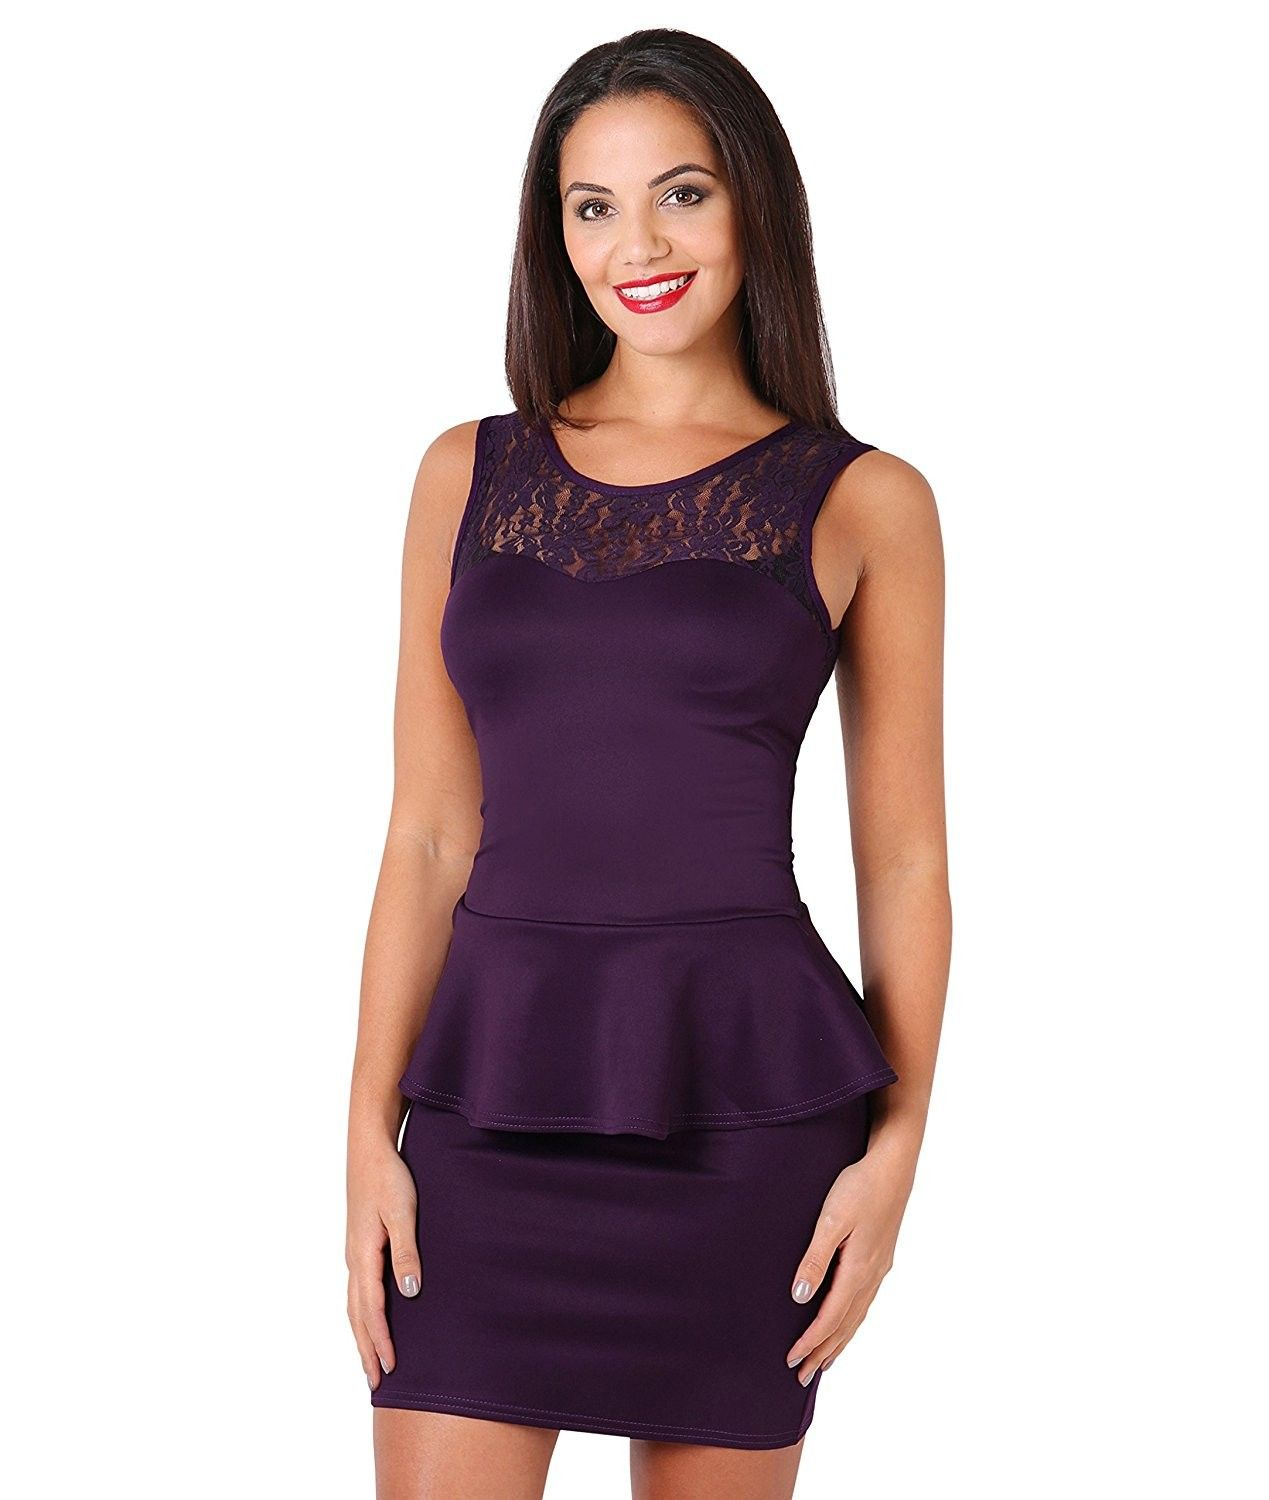 7ac533472cc Womens Party Club Cocktail Lace Frill Peplum Sleeveless Bodycon ...